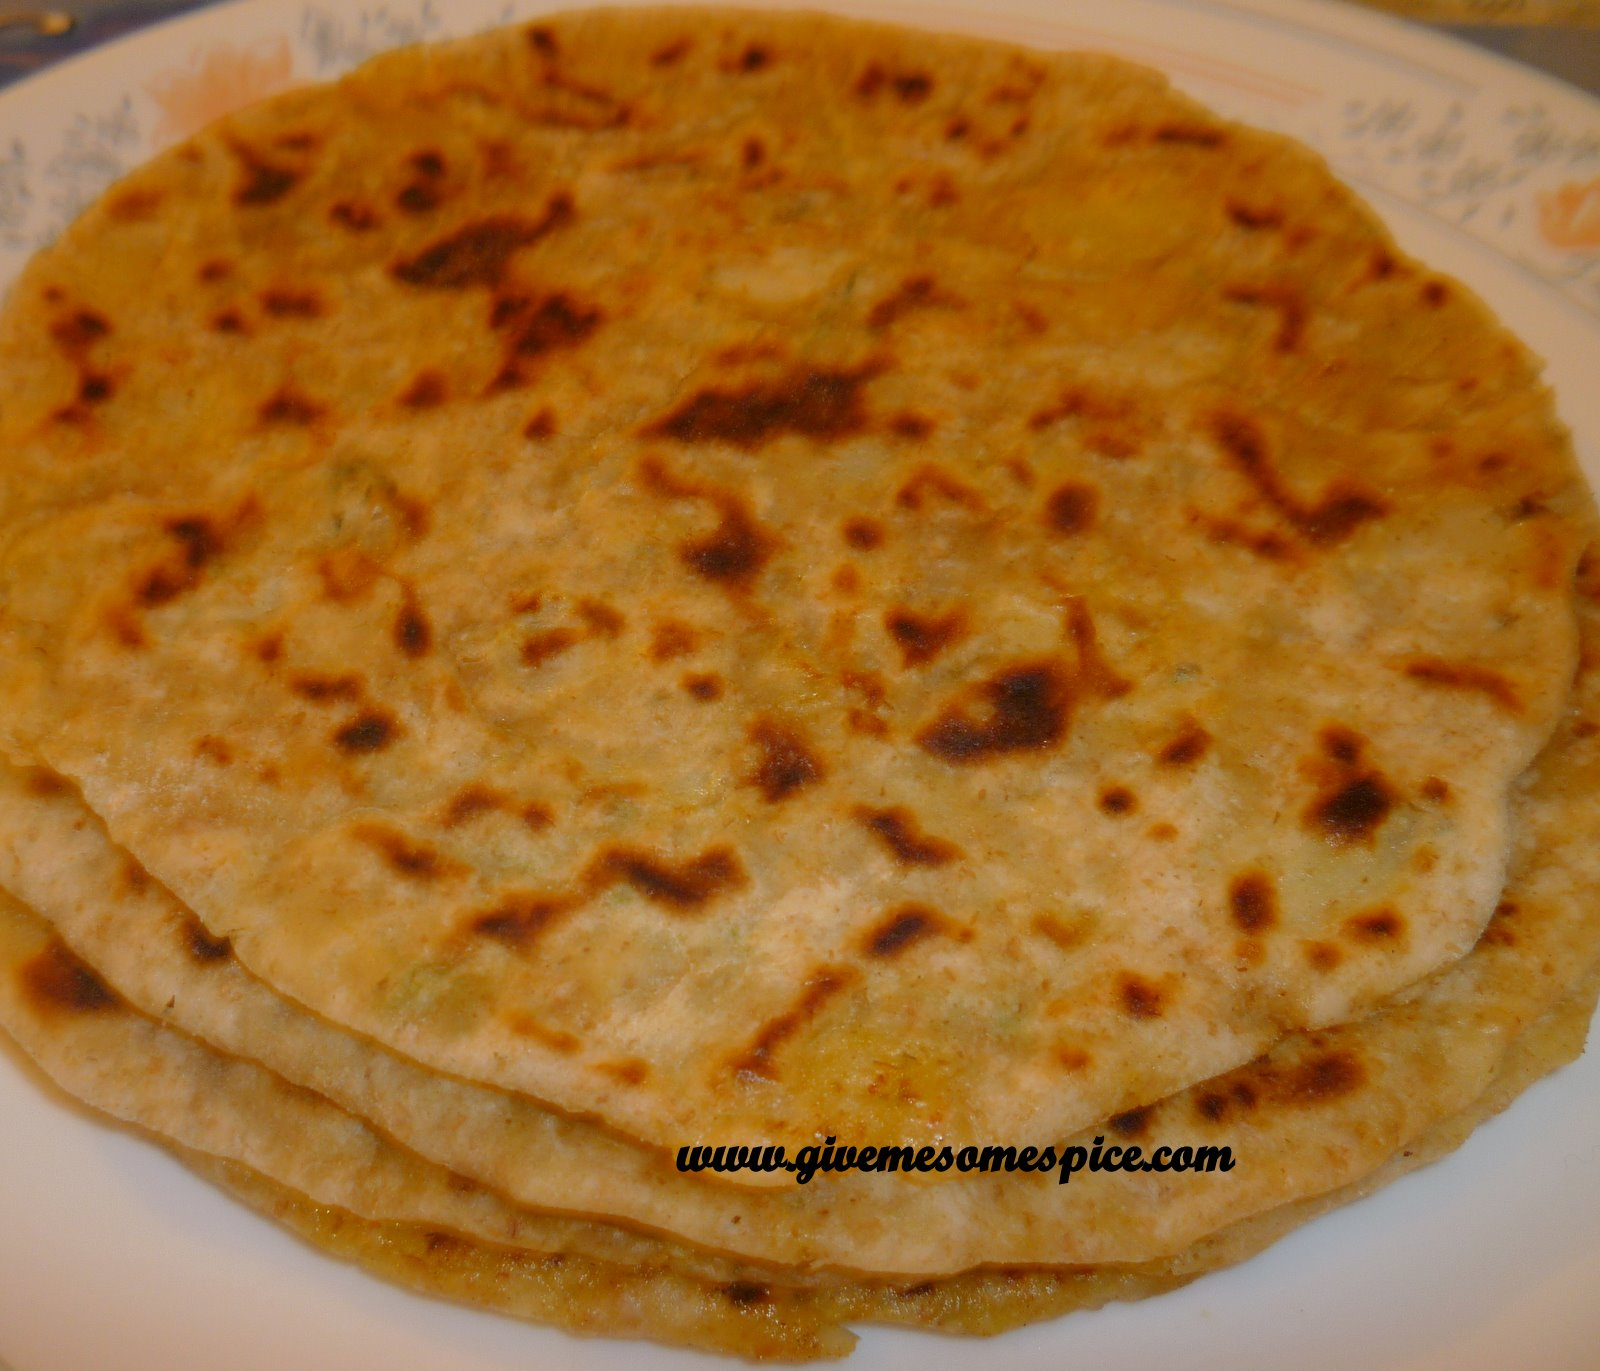 Food Hopi Indians Ate http://www.givemesomespice.com/2010/01/stuffed-parotha-or-alu-paratha.html